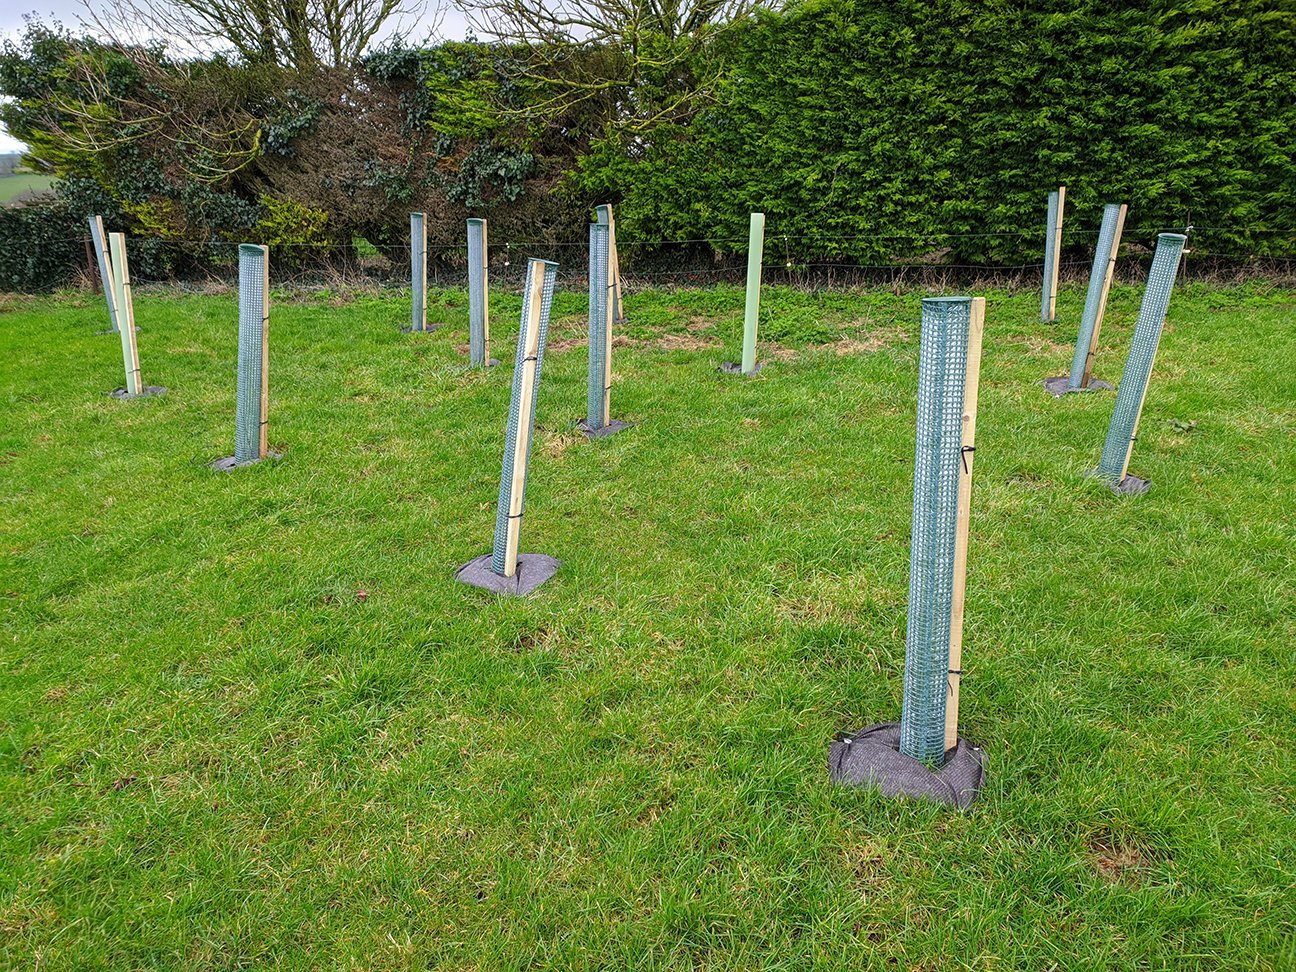 One Acre Wood  -  Dorset  -  Newly Planted Trees Are In Tree Shelters To Protect Them From Local Deer